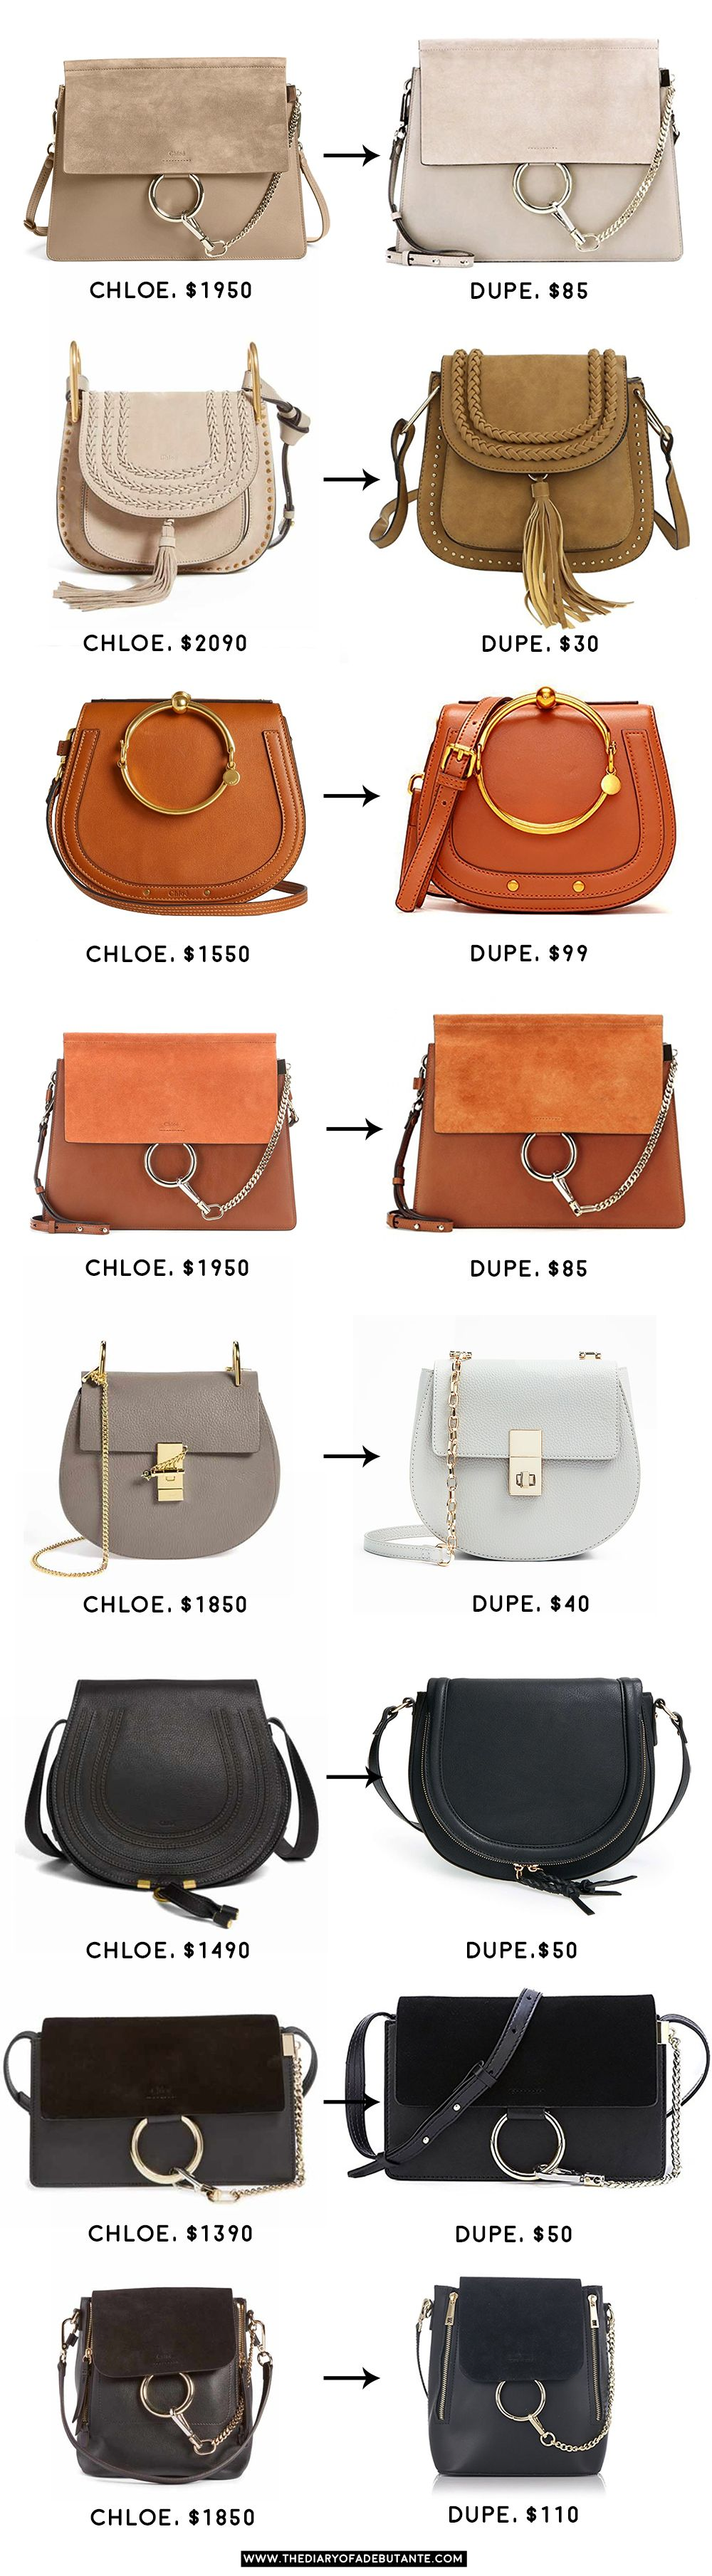 The Best Chloe Look Alike Bags (And Where to Find Them)  f7c6e878f